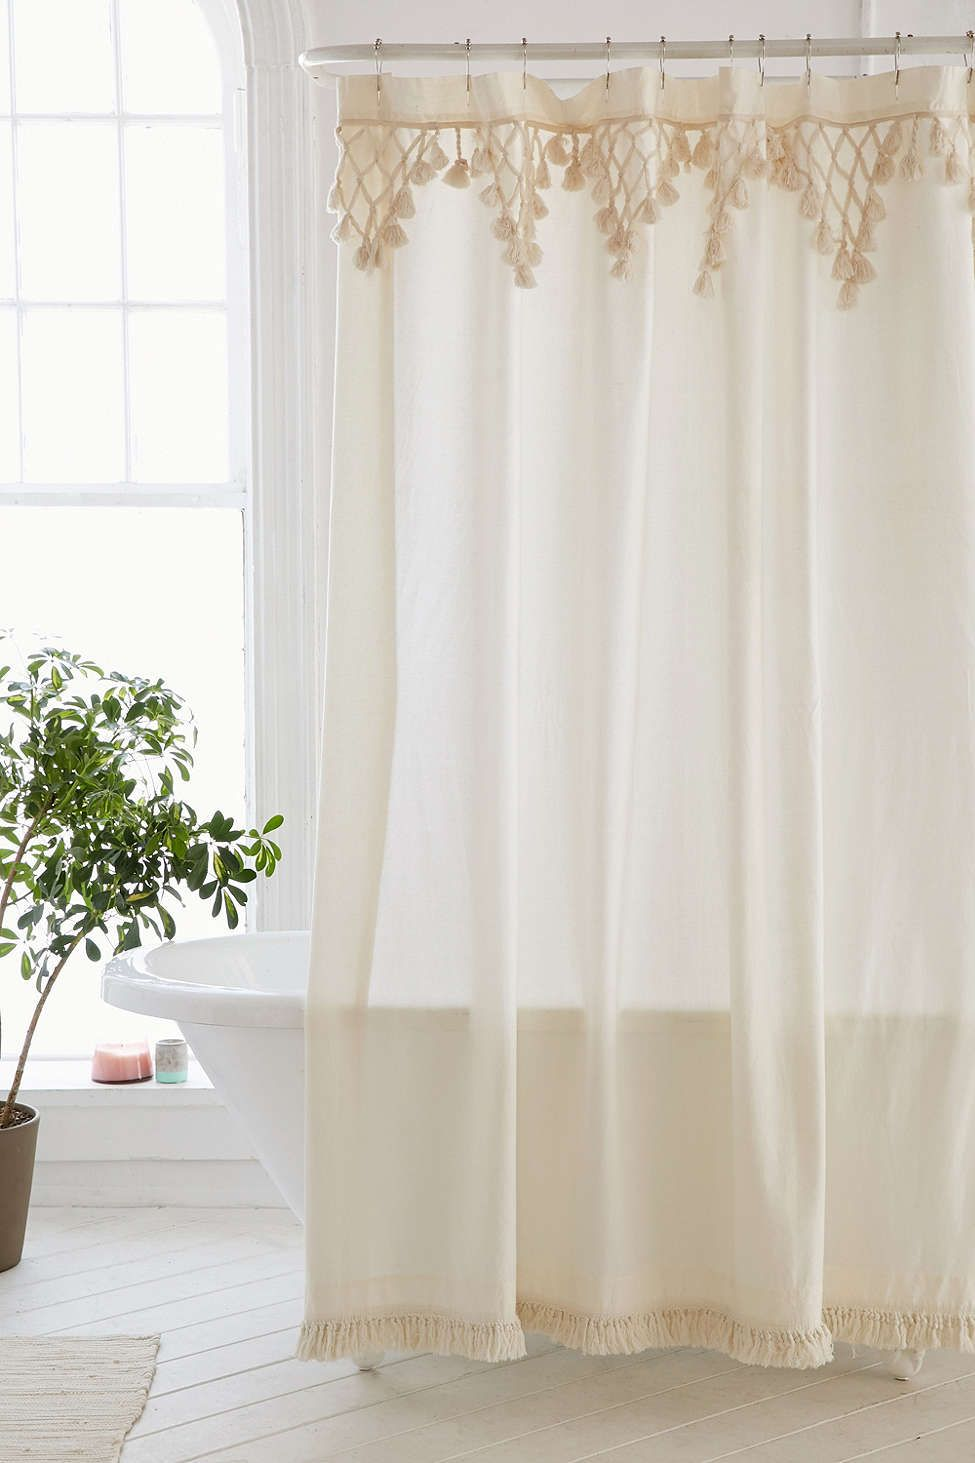 Topanga Fringe Shower Curtain Urban Outfitters And Urban